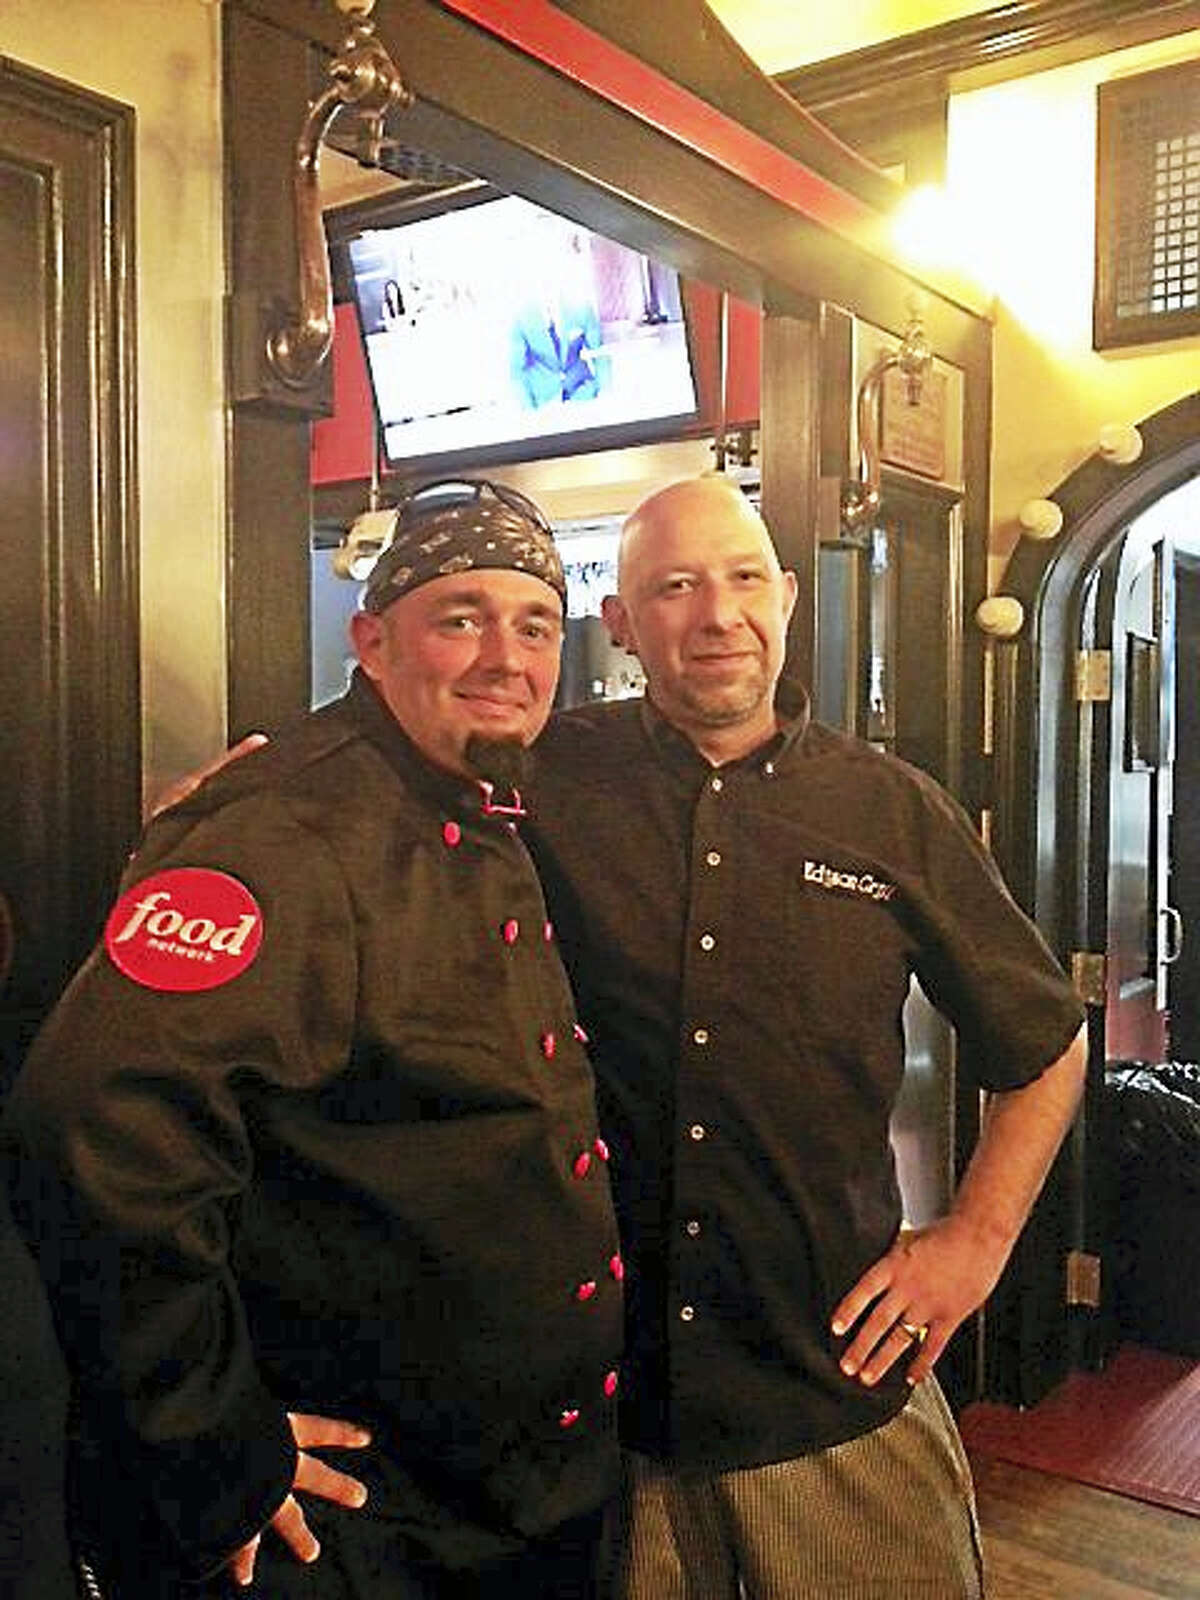 """Winsted native Dan Shopey, left, appeared on the Food Network program """"Bakers vs. Fakers"""" Wednesday. He is pictured with Jerry Czyz at the Edison Grill in Harwinton."""